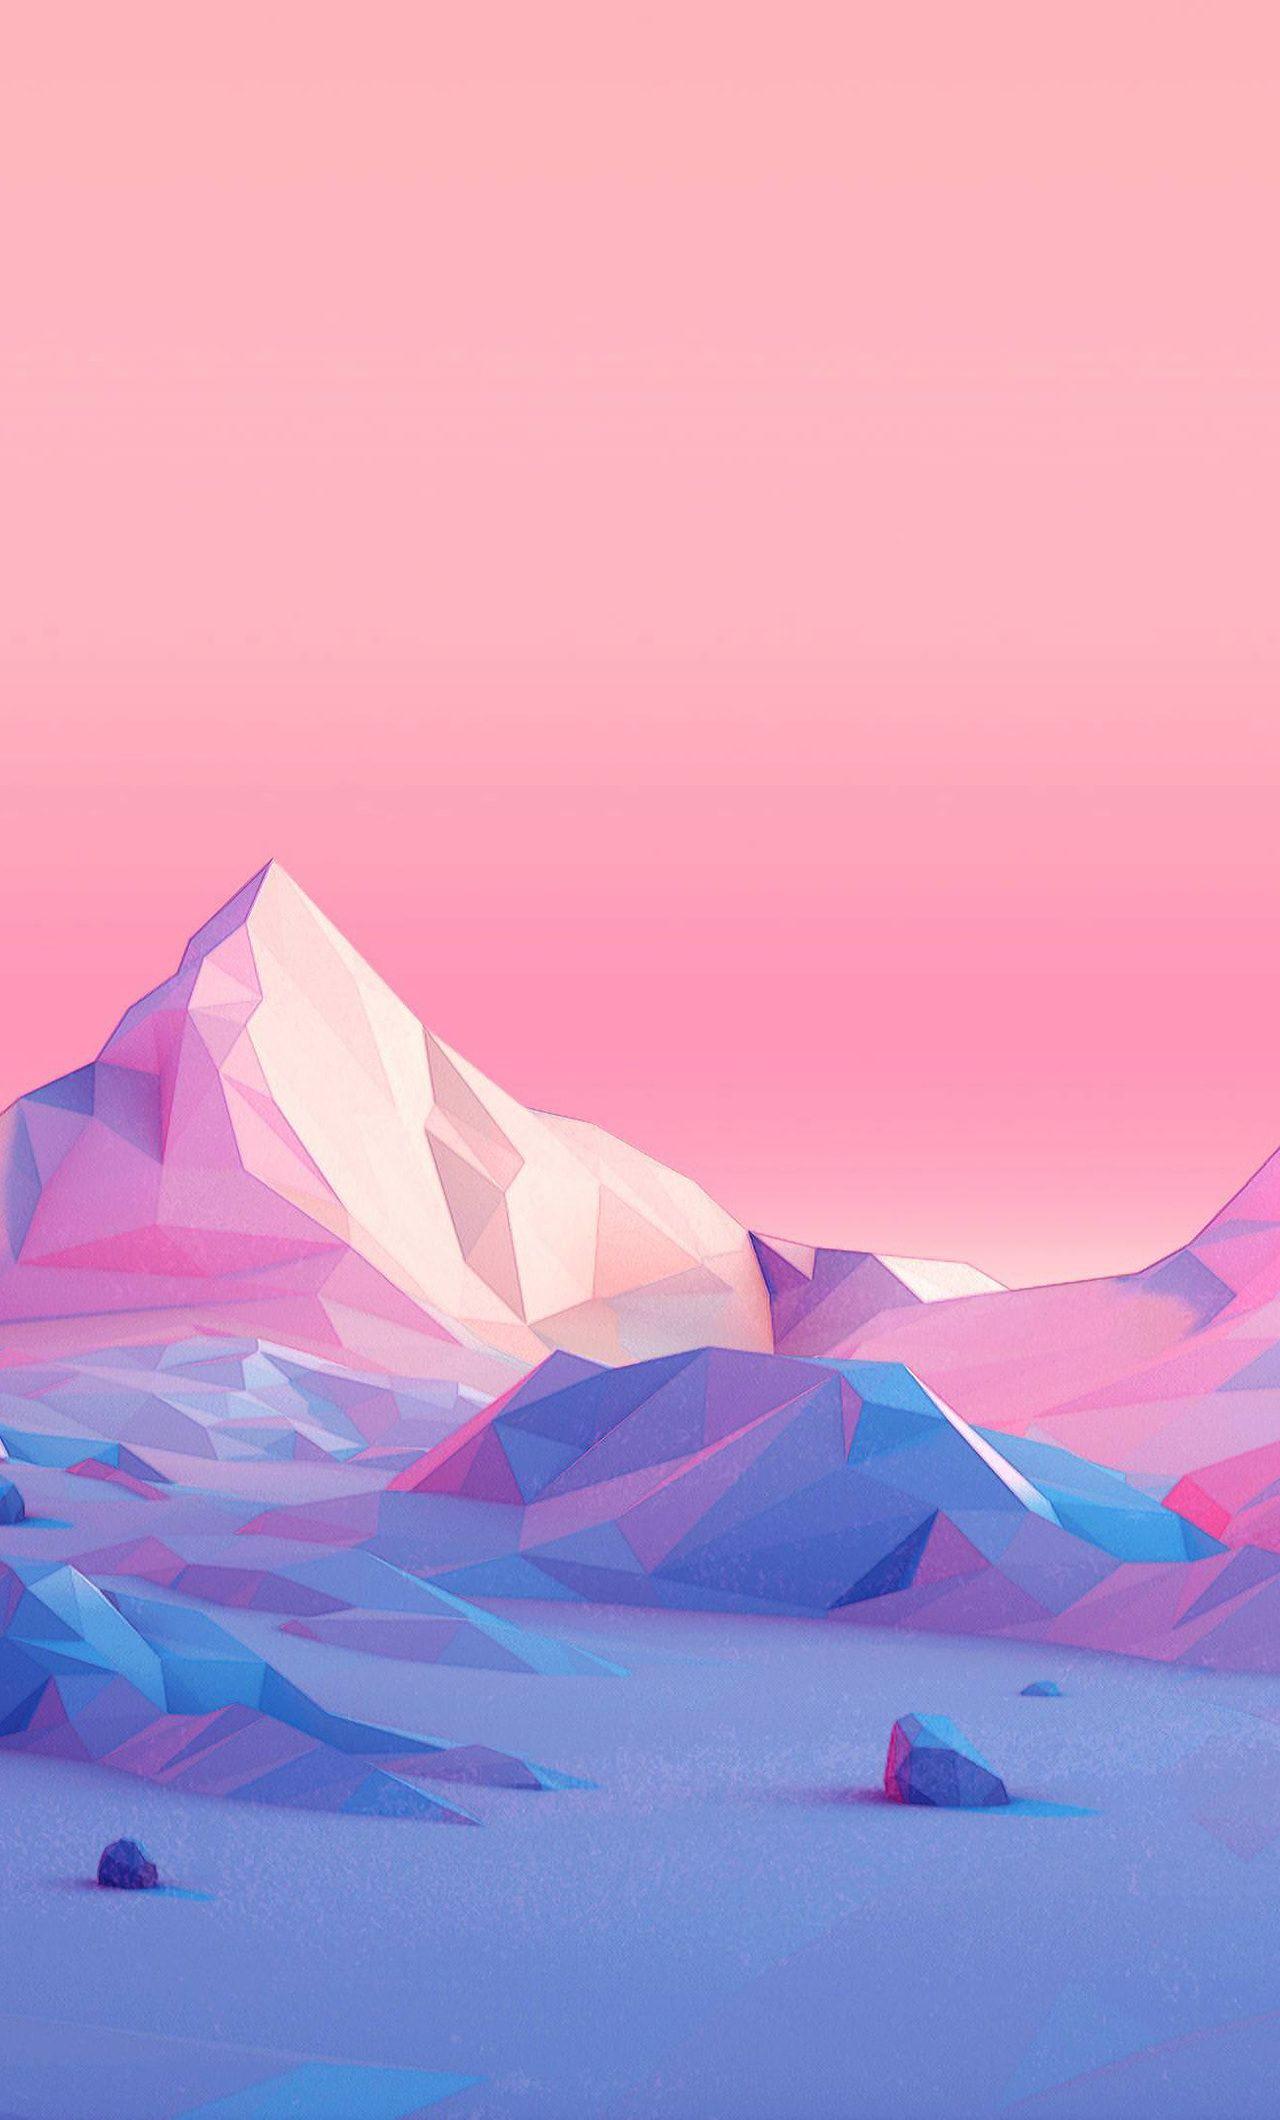 Minimalistic Polygon Mountain 1280x2120 Scenery Wallpaper Landscape Wallpaper Art Wallpaper